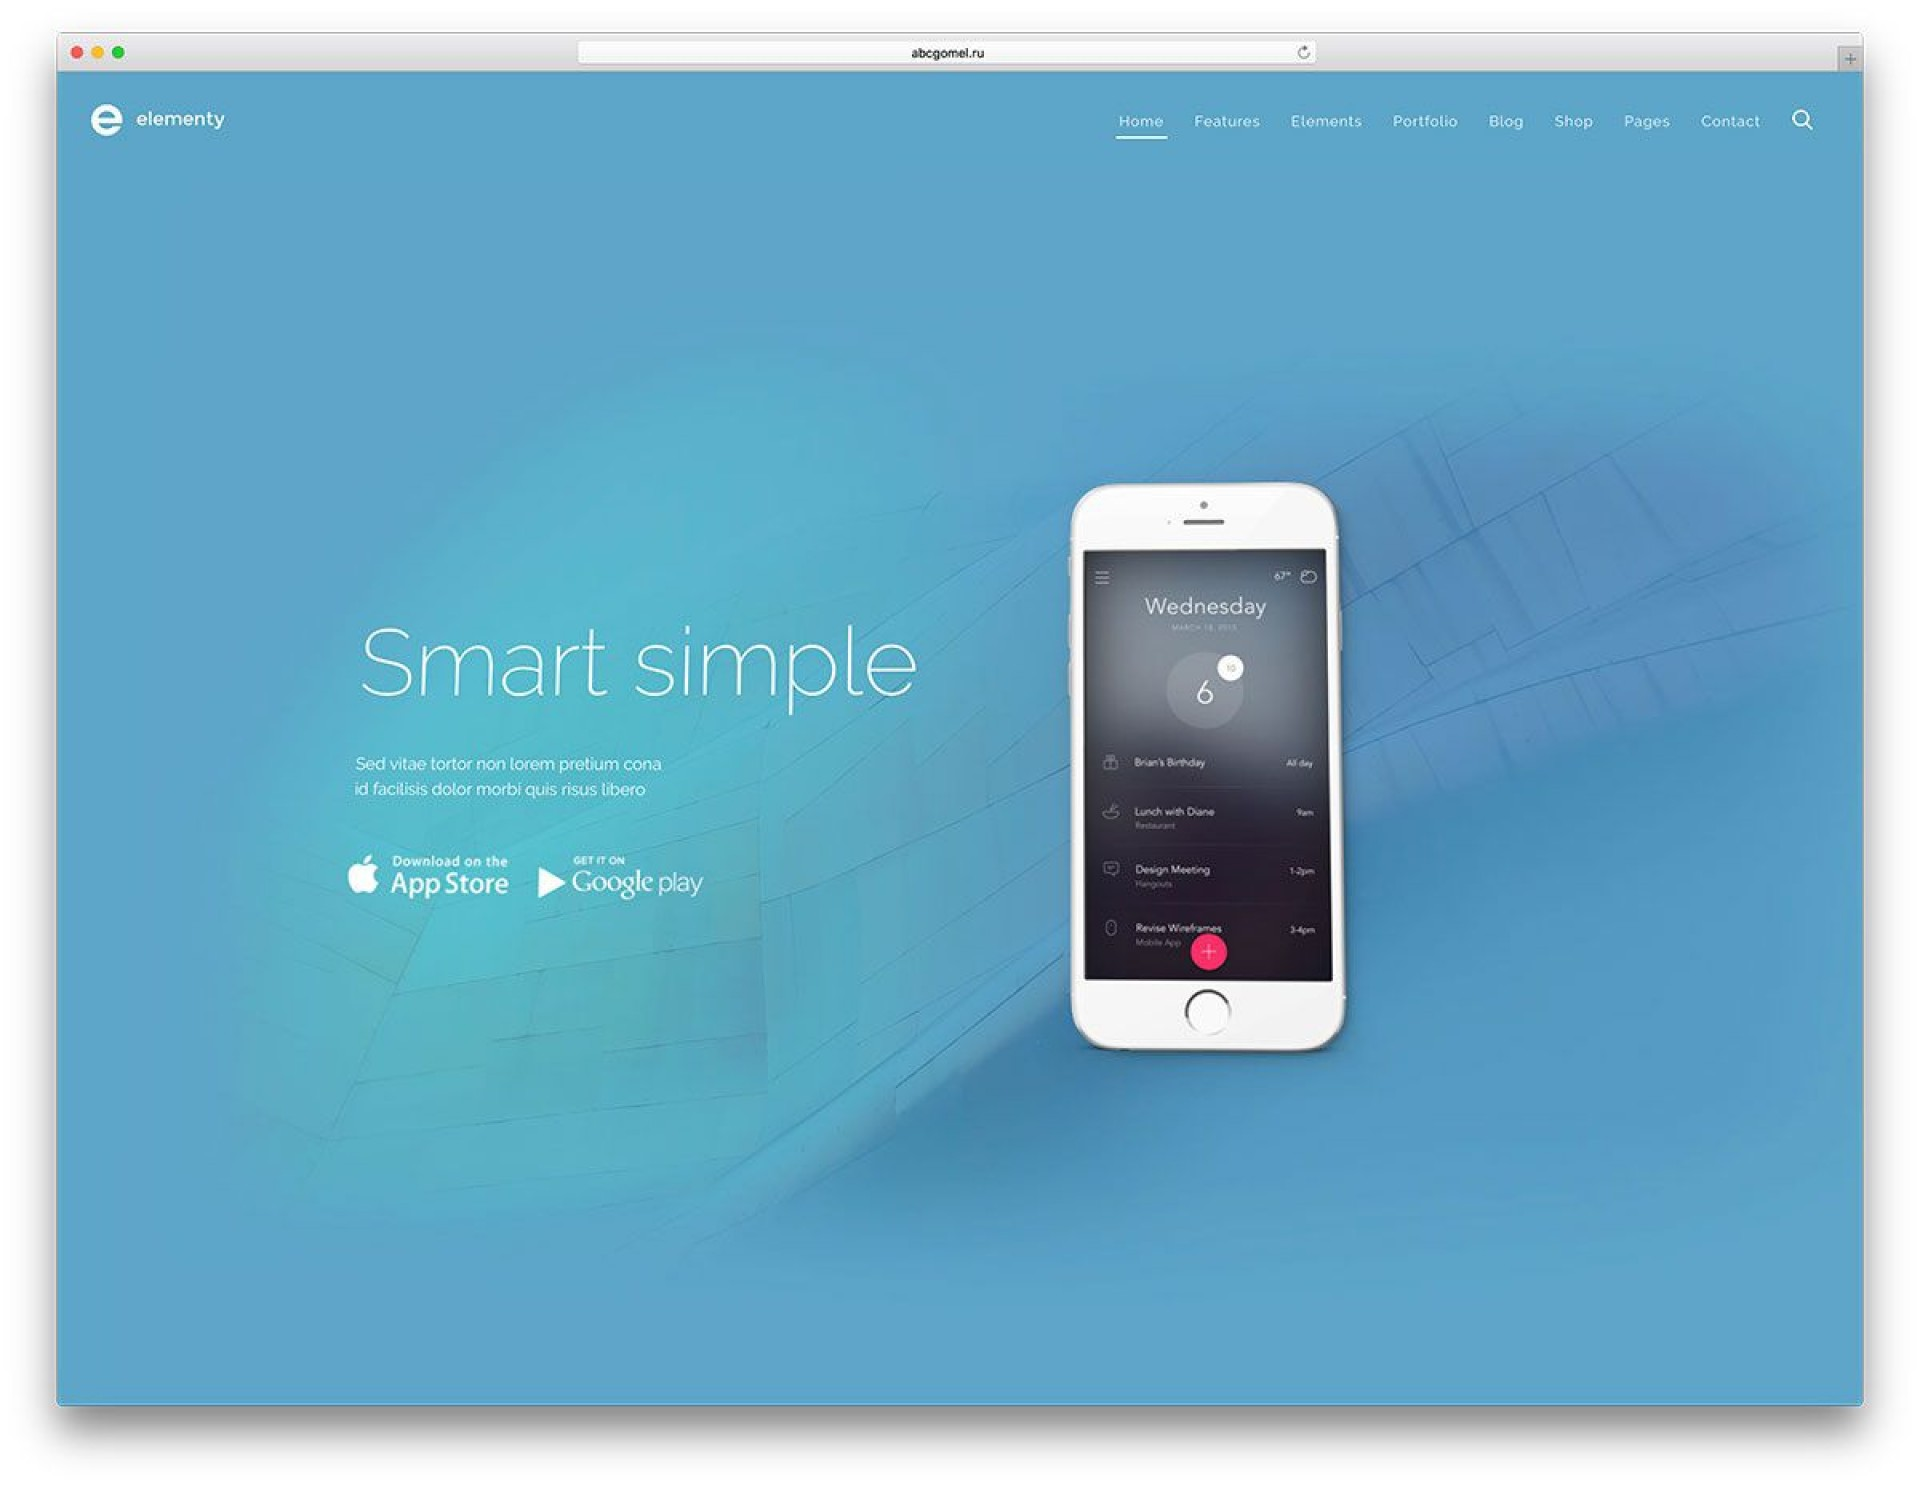 002 Incredible One Page Website Template Html5 Free Download Image  Parallax1920